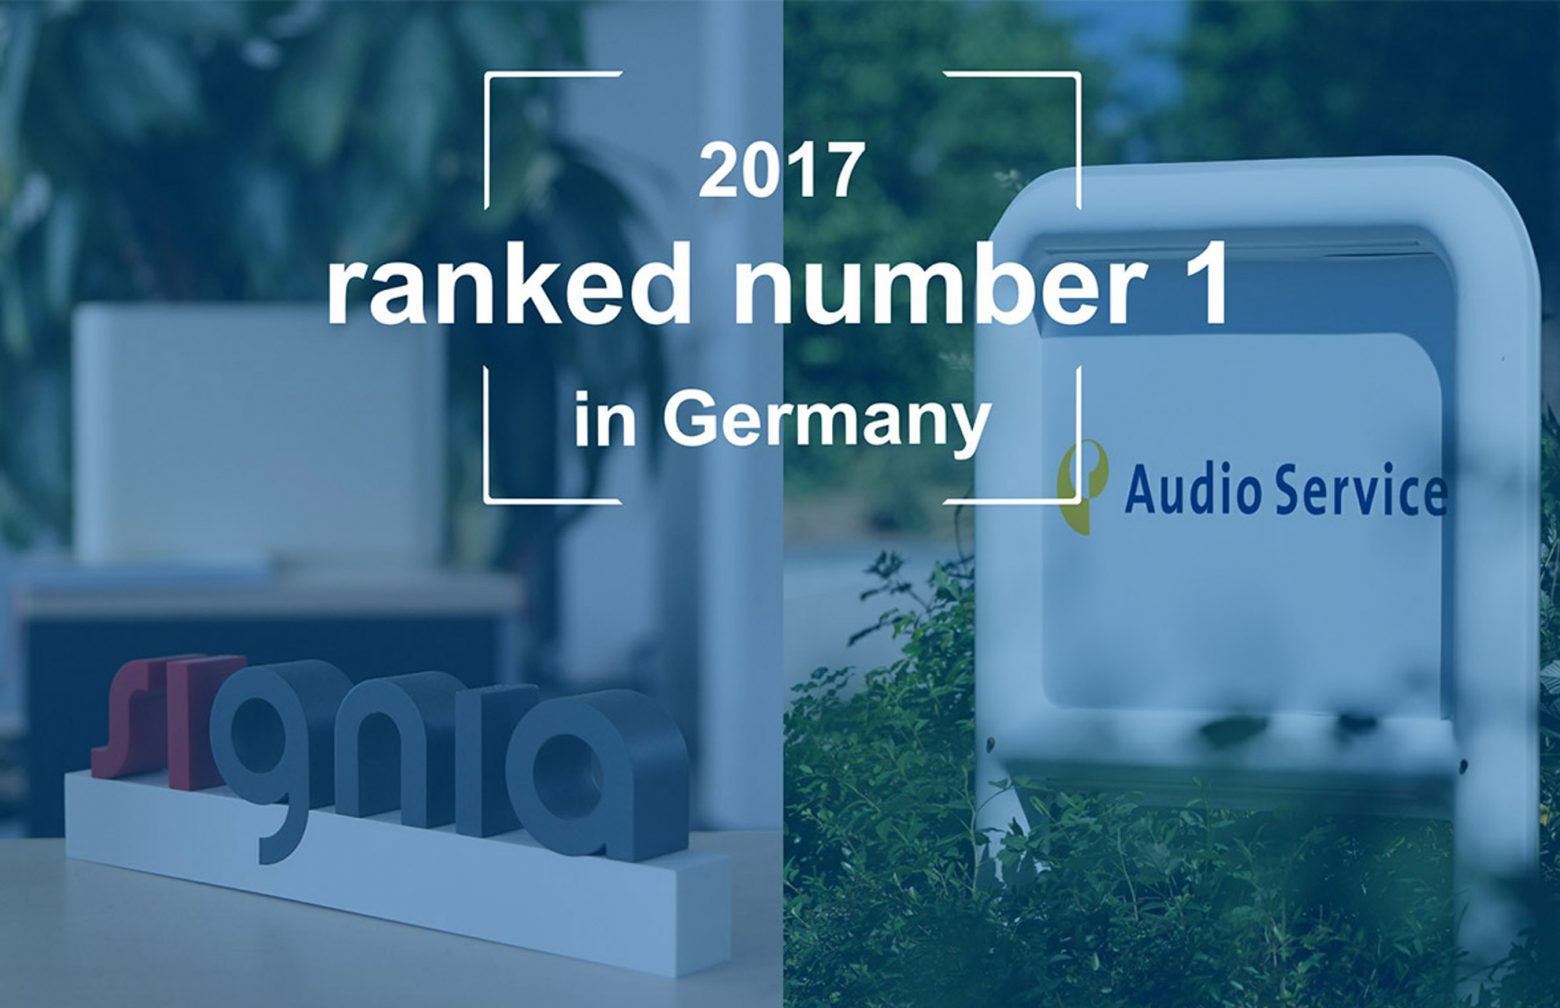 Audioservice ranked number 1